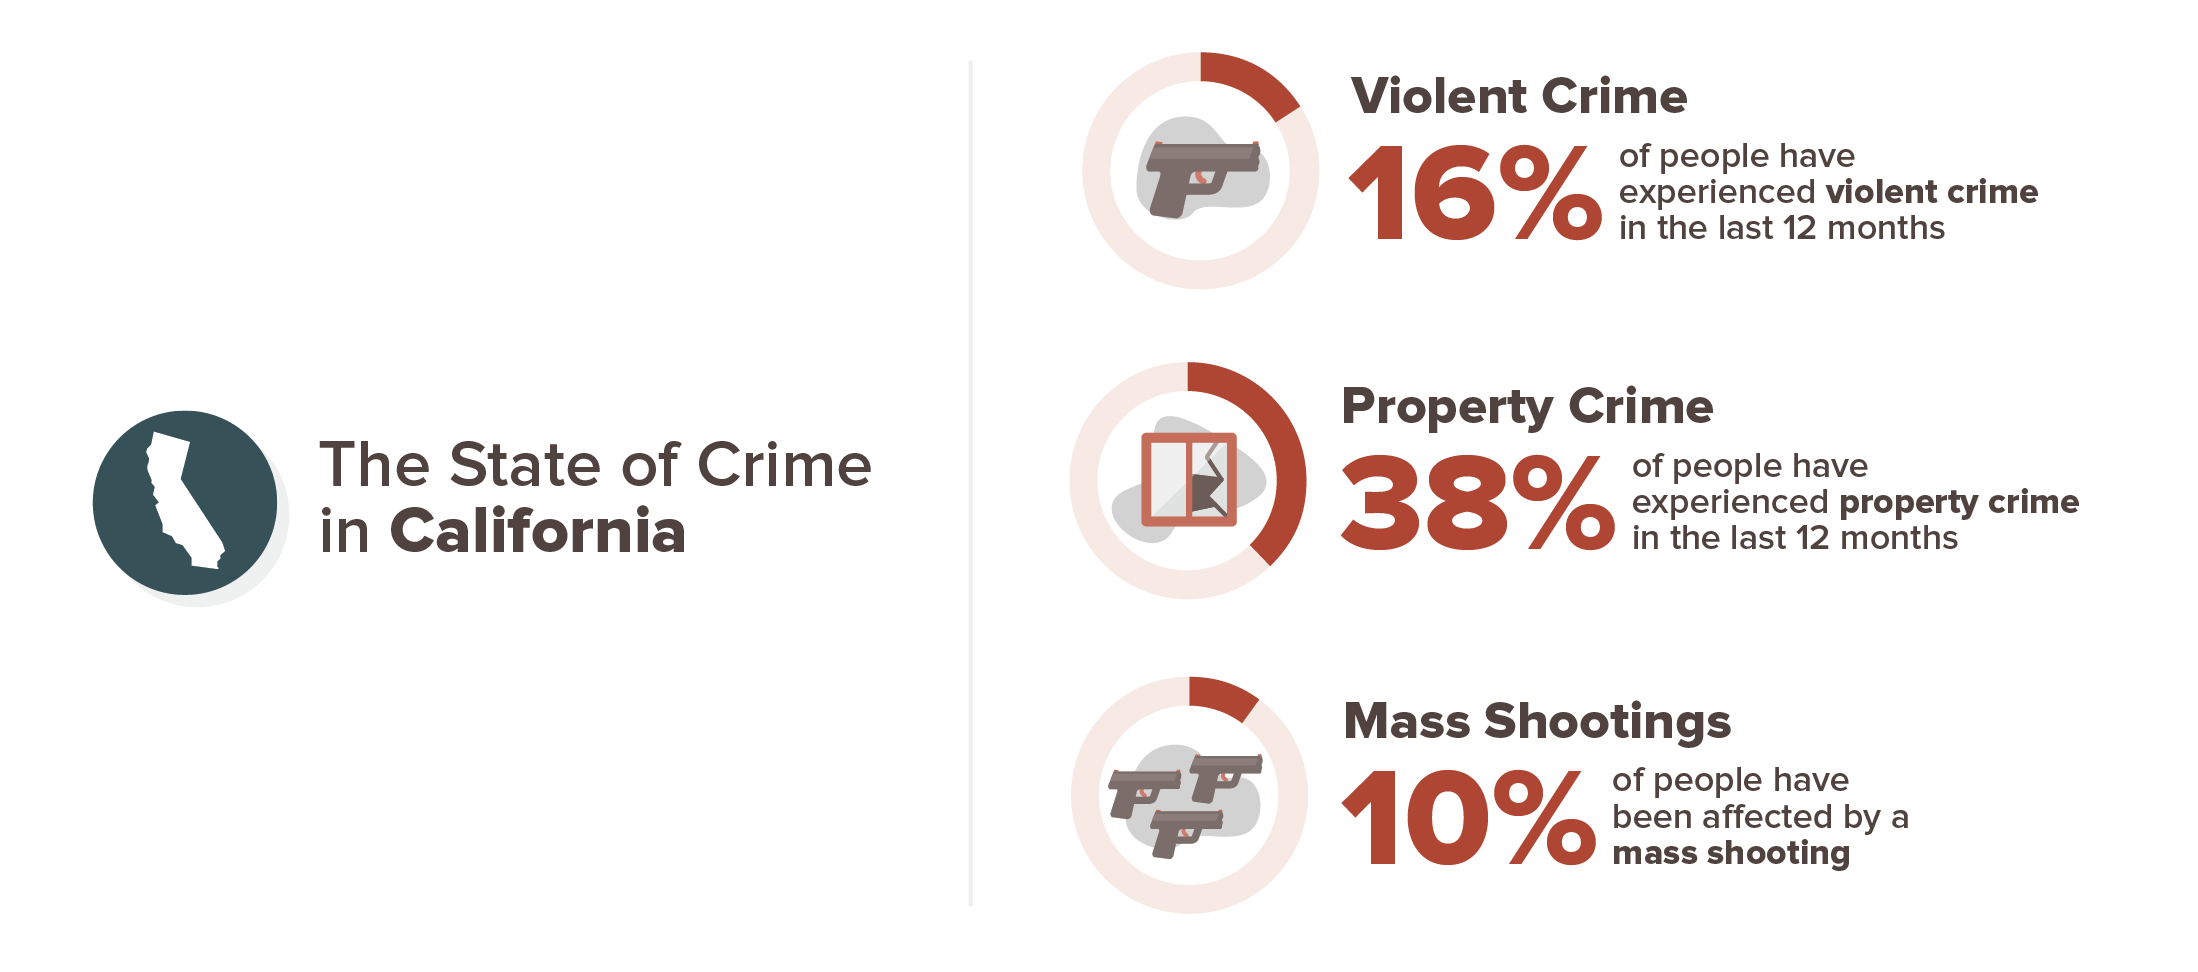 California crime experience infographic; 16% violent crime, 38% property crime, 10% mass shooting